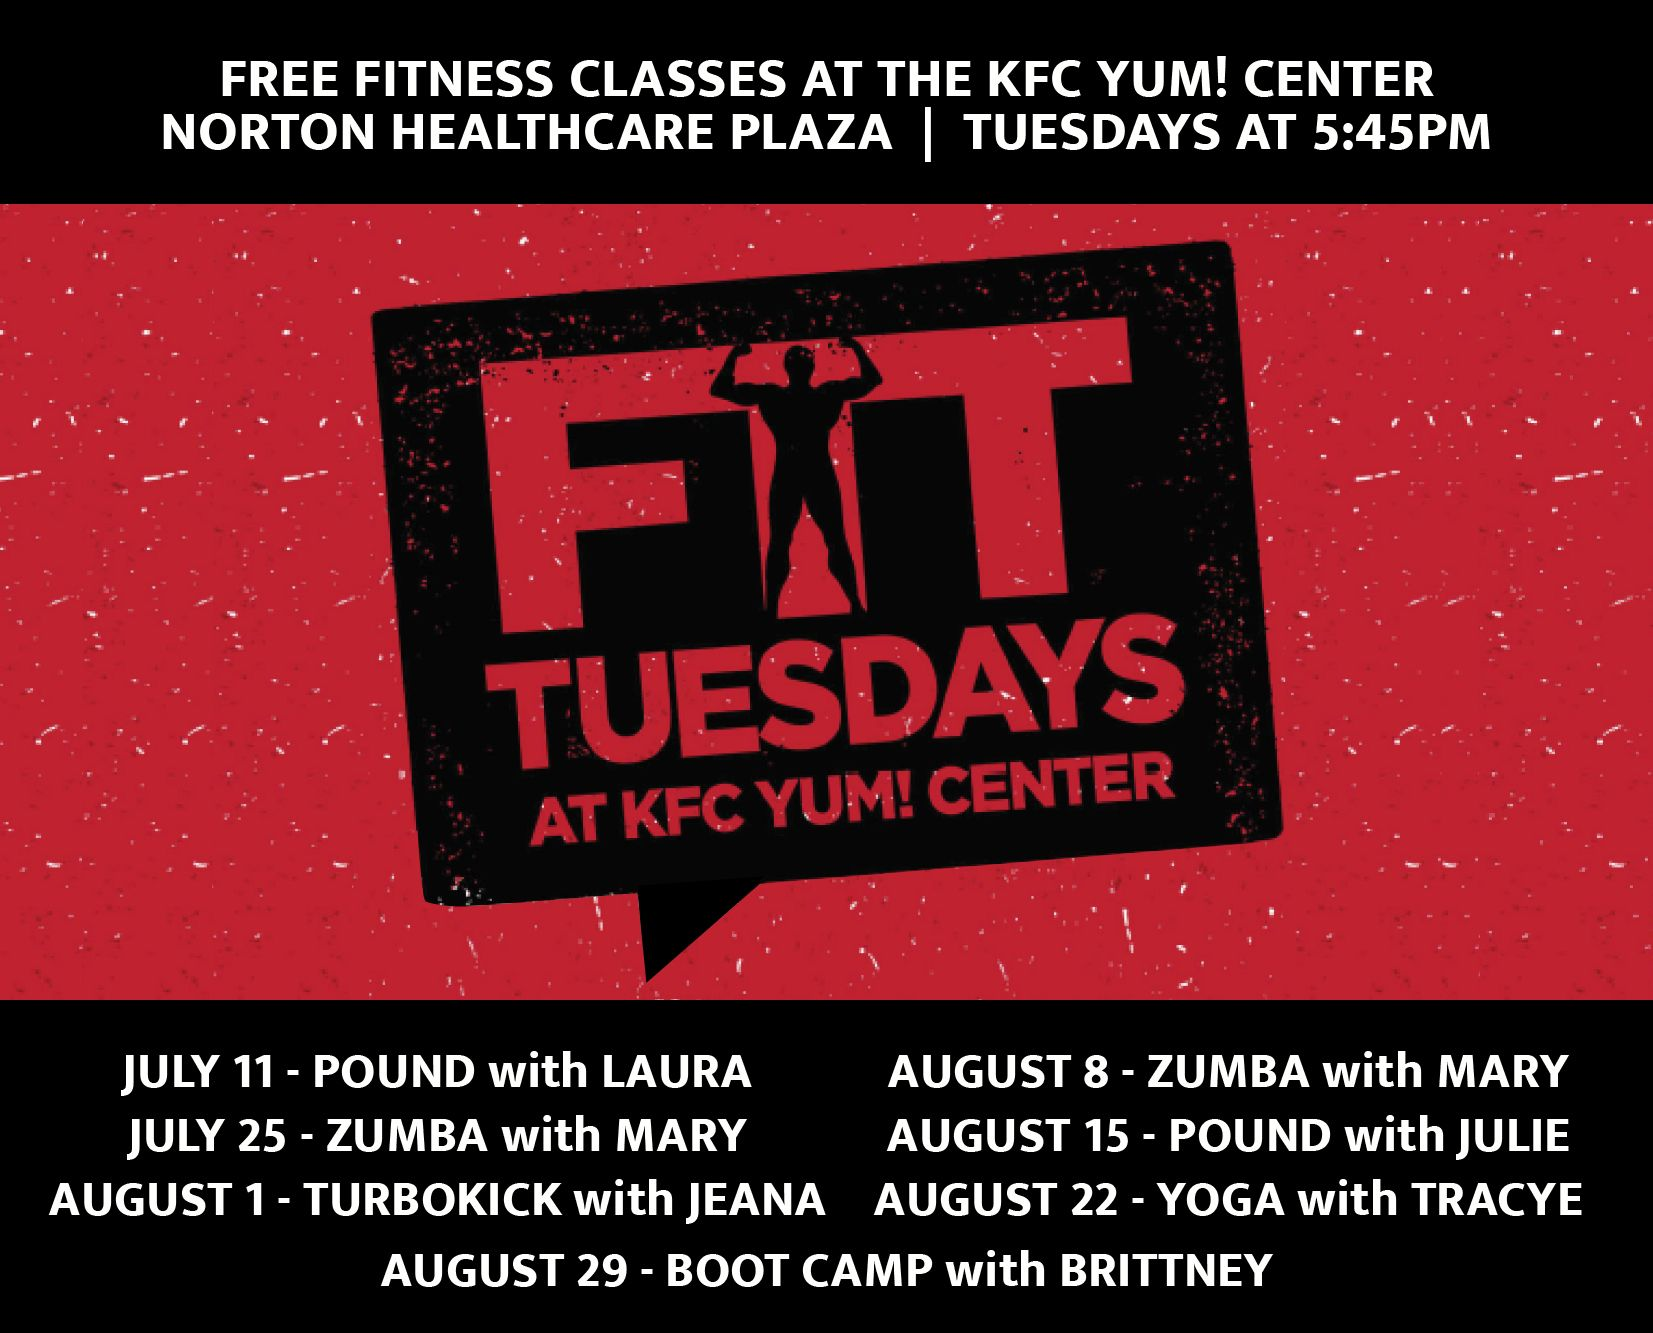 June, July, & August - Fit Tuesdays at the KFC Yum! Center image